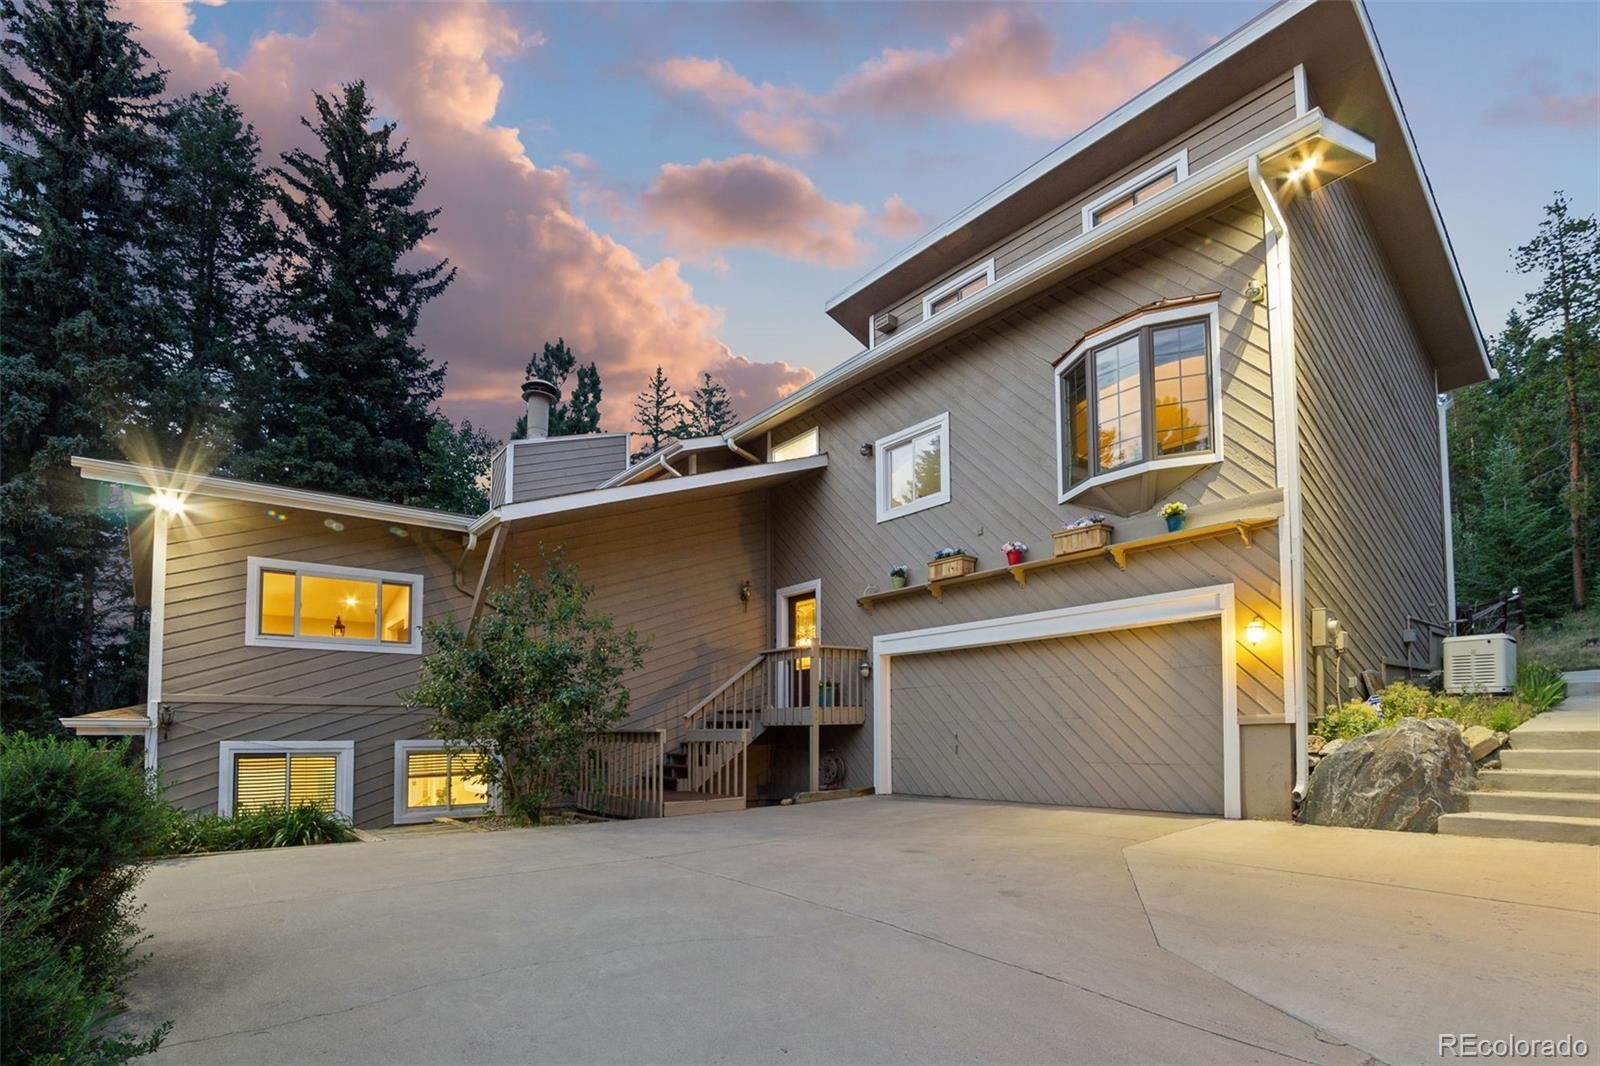 8280 Grizzly Way, Evergreen, CO 80439 - #: 6479884